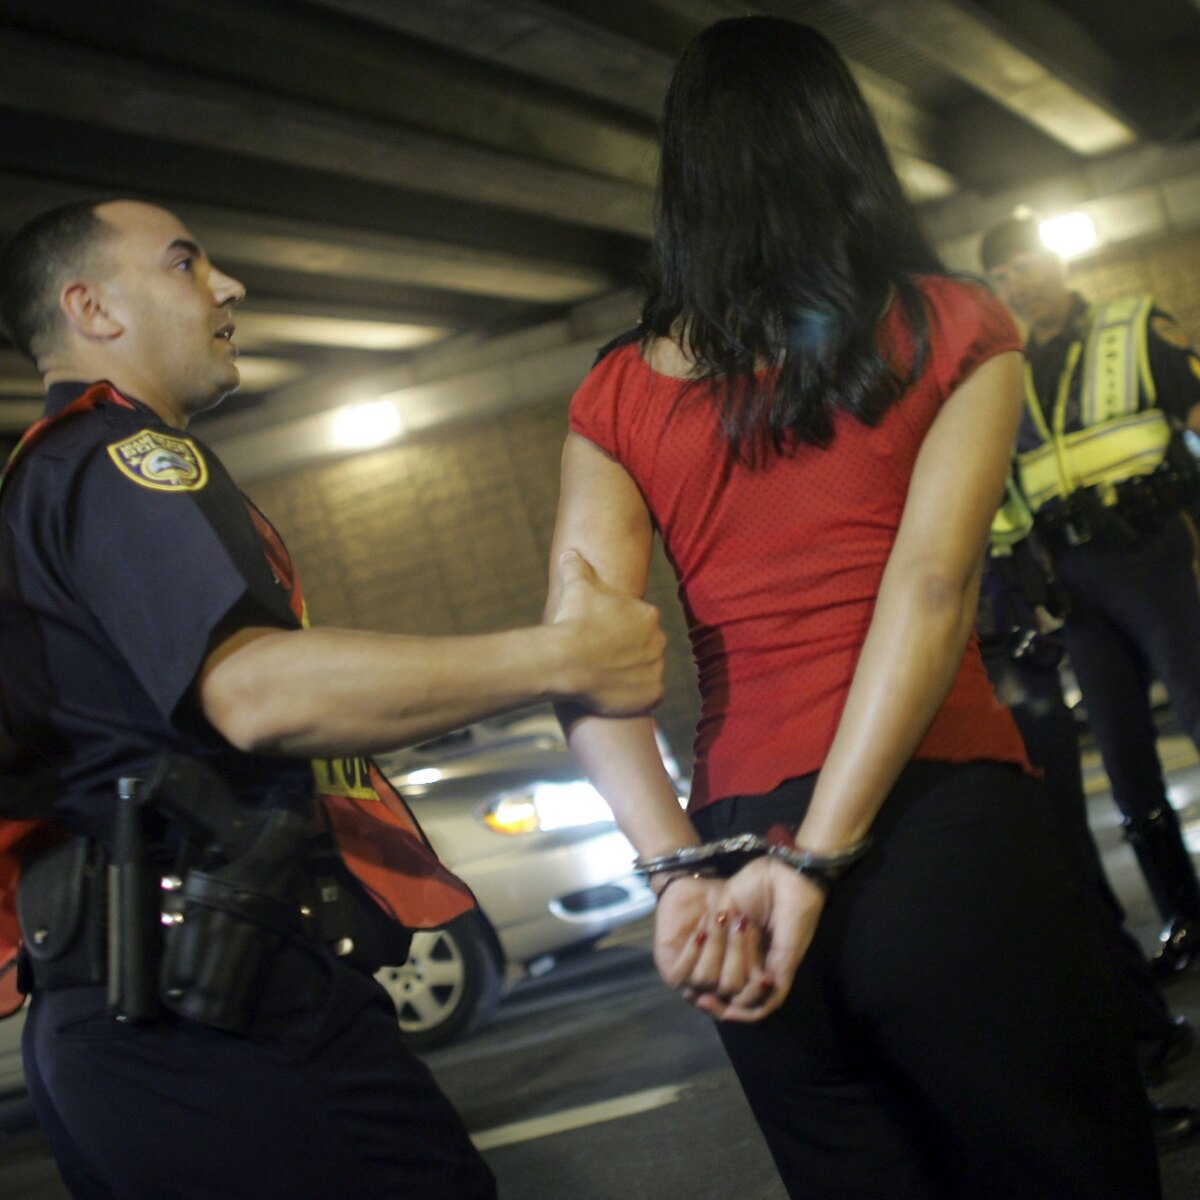 Utah Will Implement The Strictest DUI Law In The Country